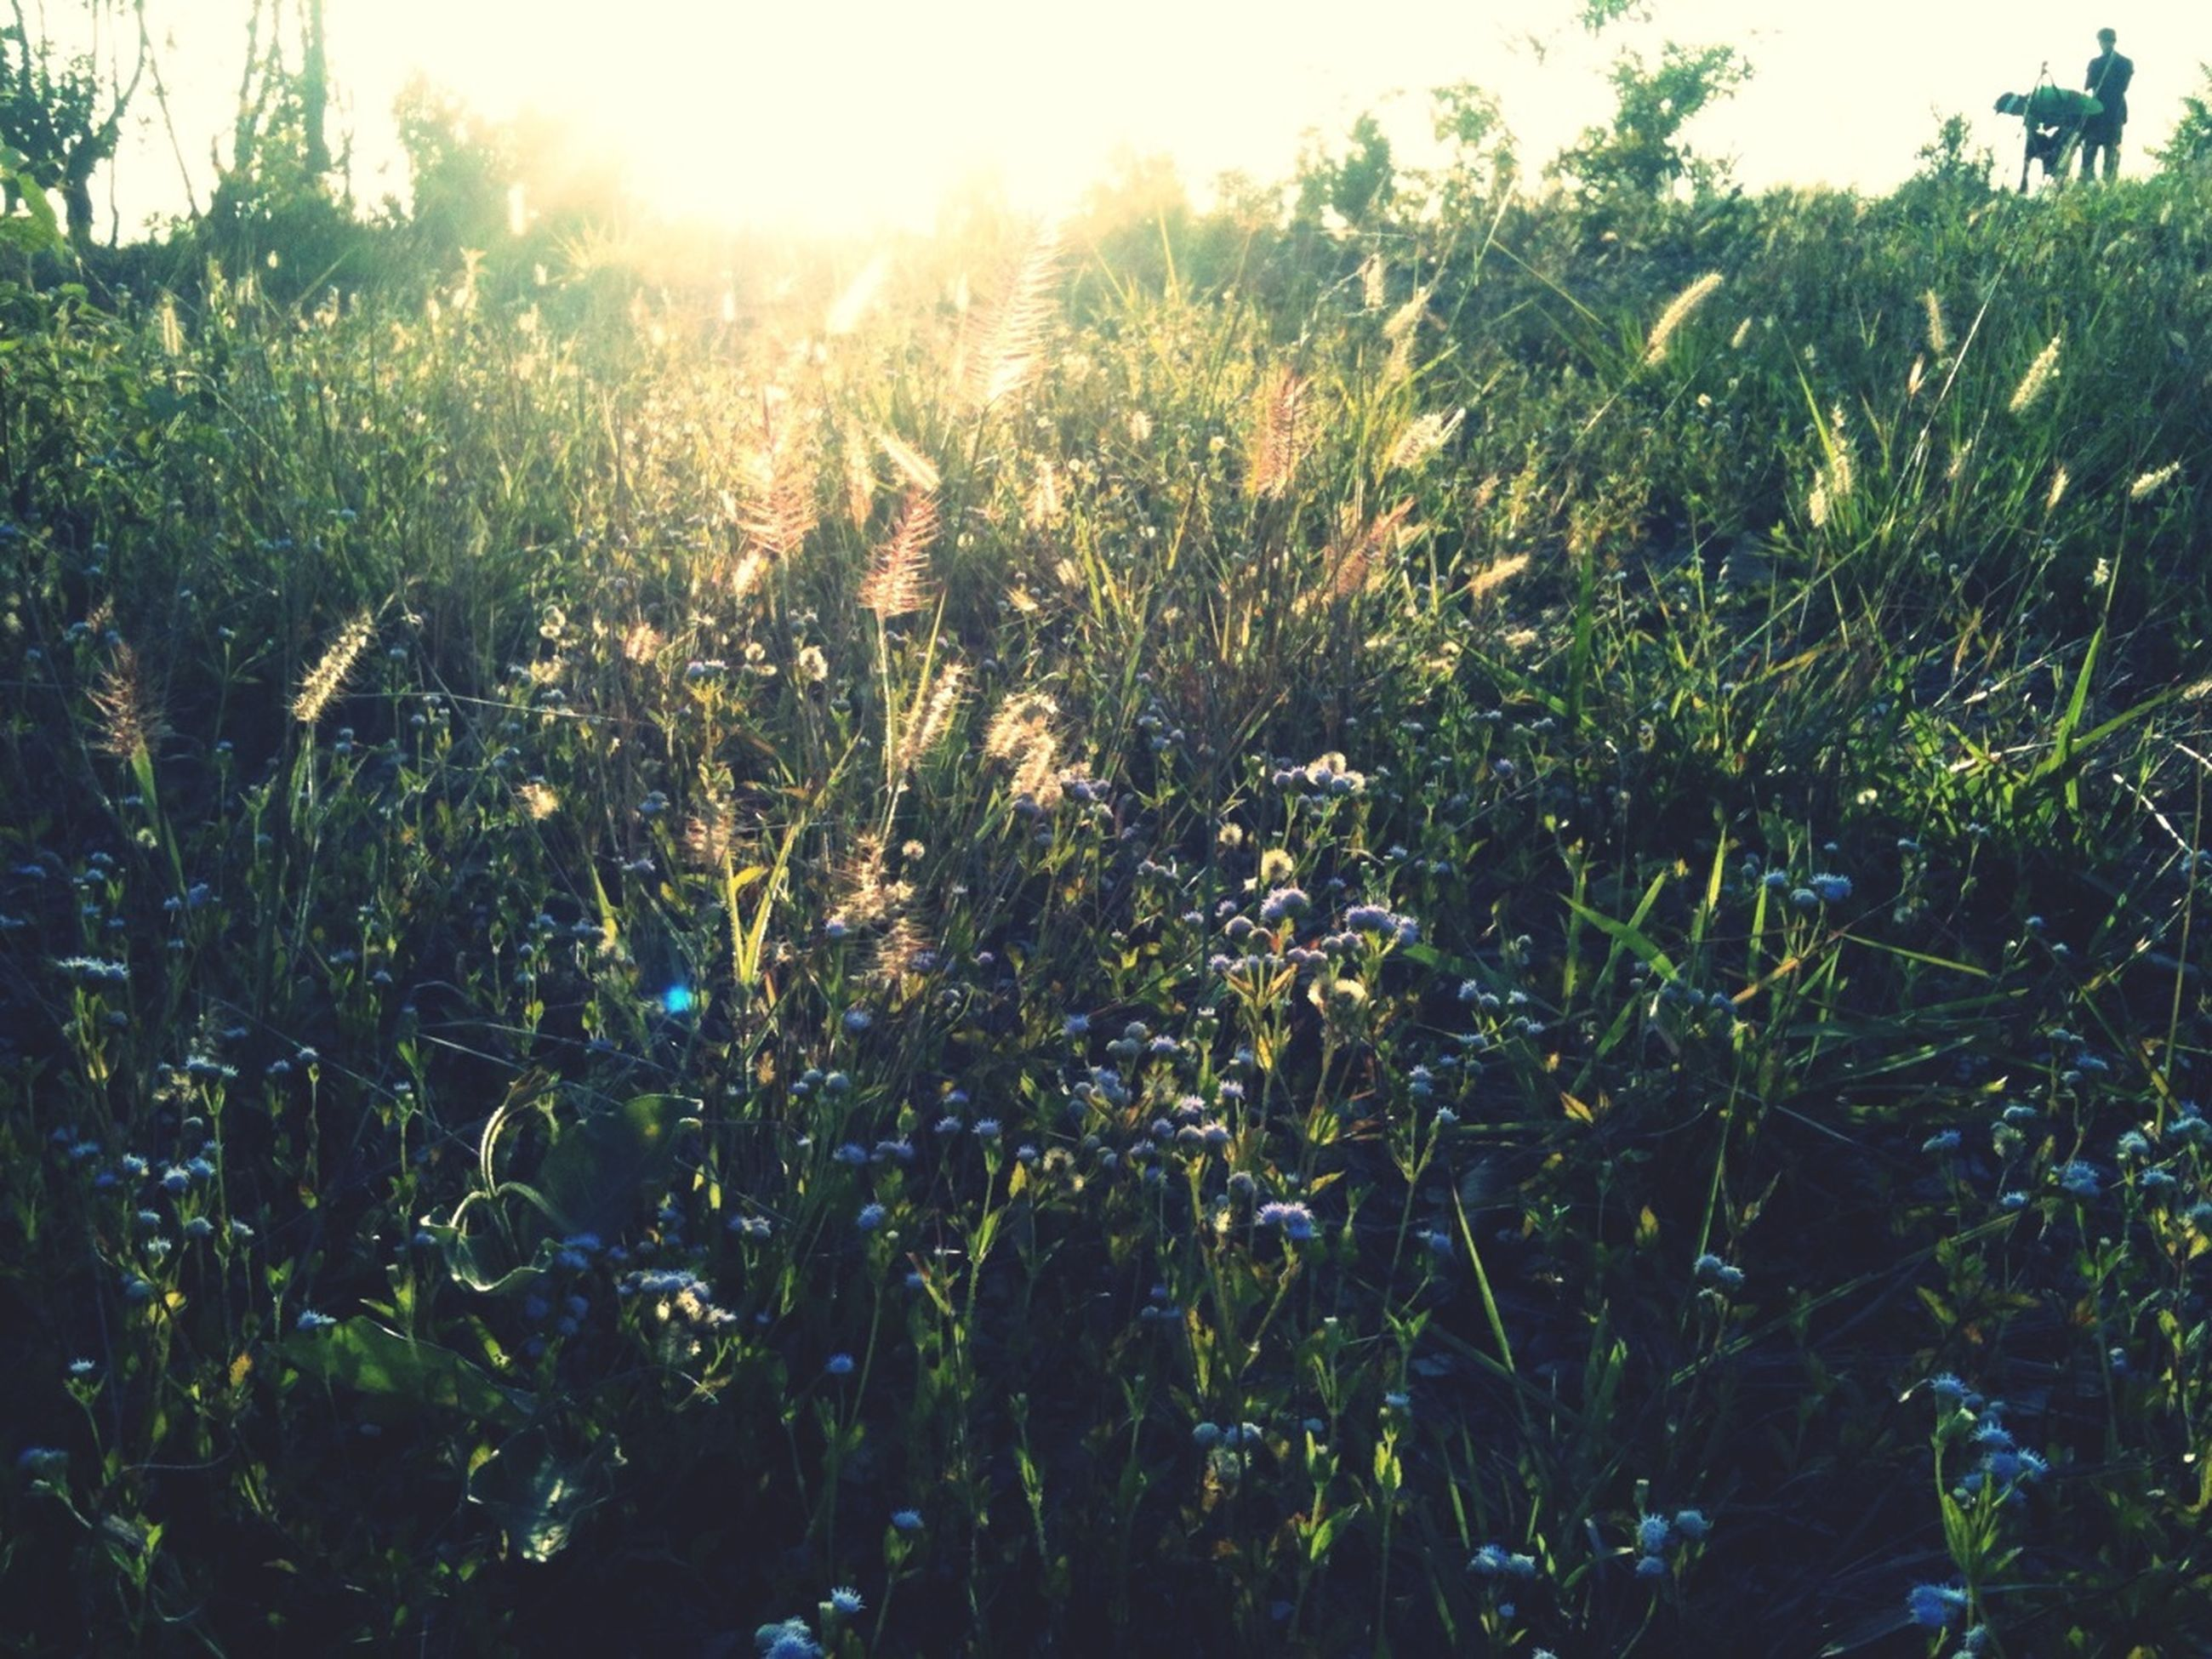 growth, plant, sunlight, sun, sunbeam, field, grass, beauty in nature, nature, lens flare, flower, freshness, tranquility, green color, day, outdoors, sunny, growing, tranquil scene, no people